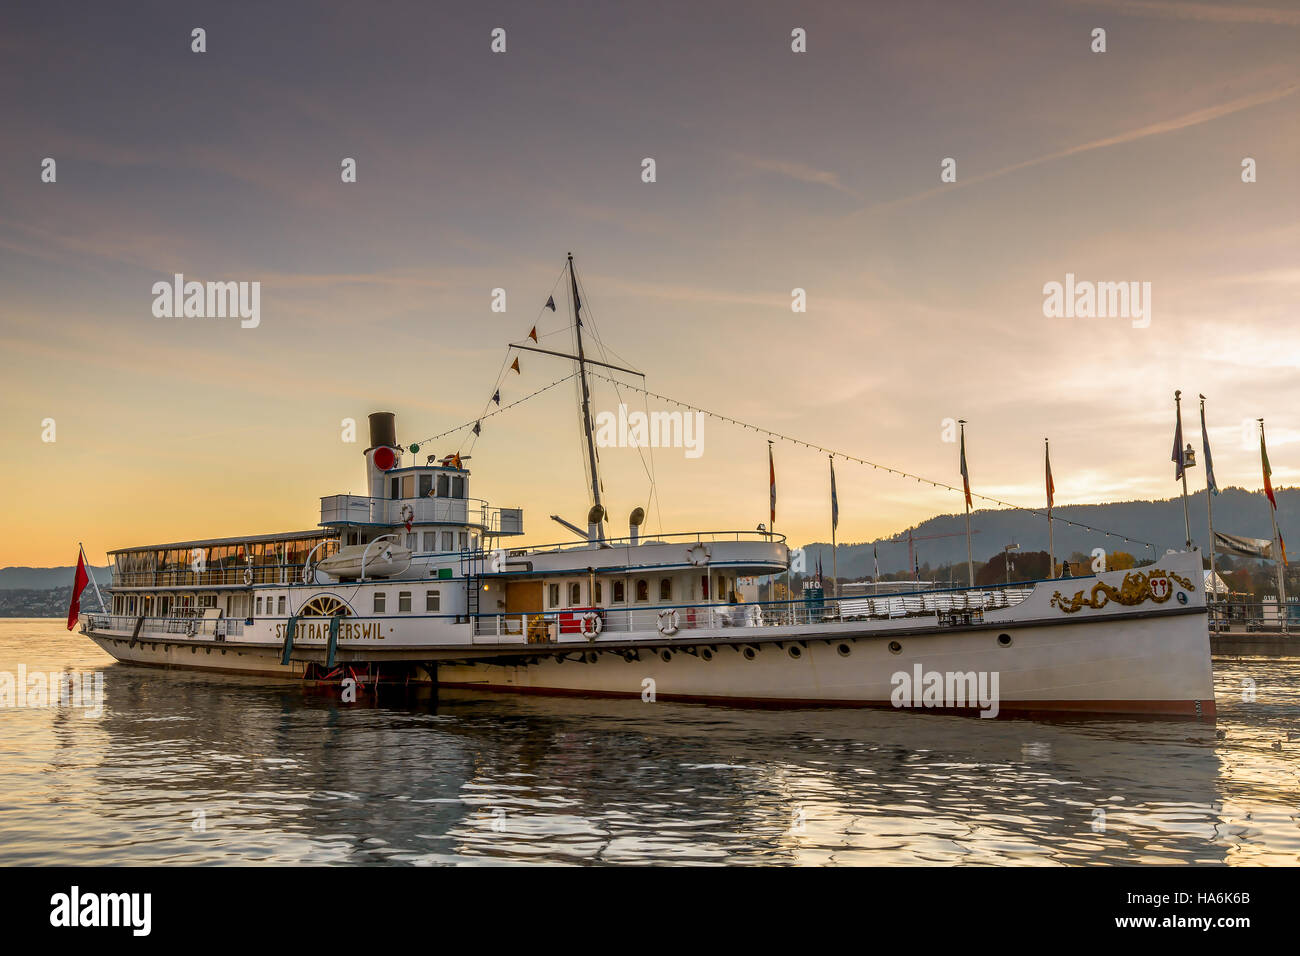 RAPPERSWIL, SWITZERLAND - AUGUST 17, 2014: Historical steam boat 'Stadt Rapperswil' preparing for cruise. - Stock Image